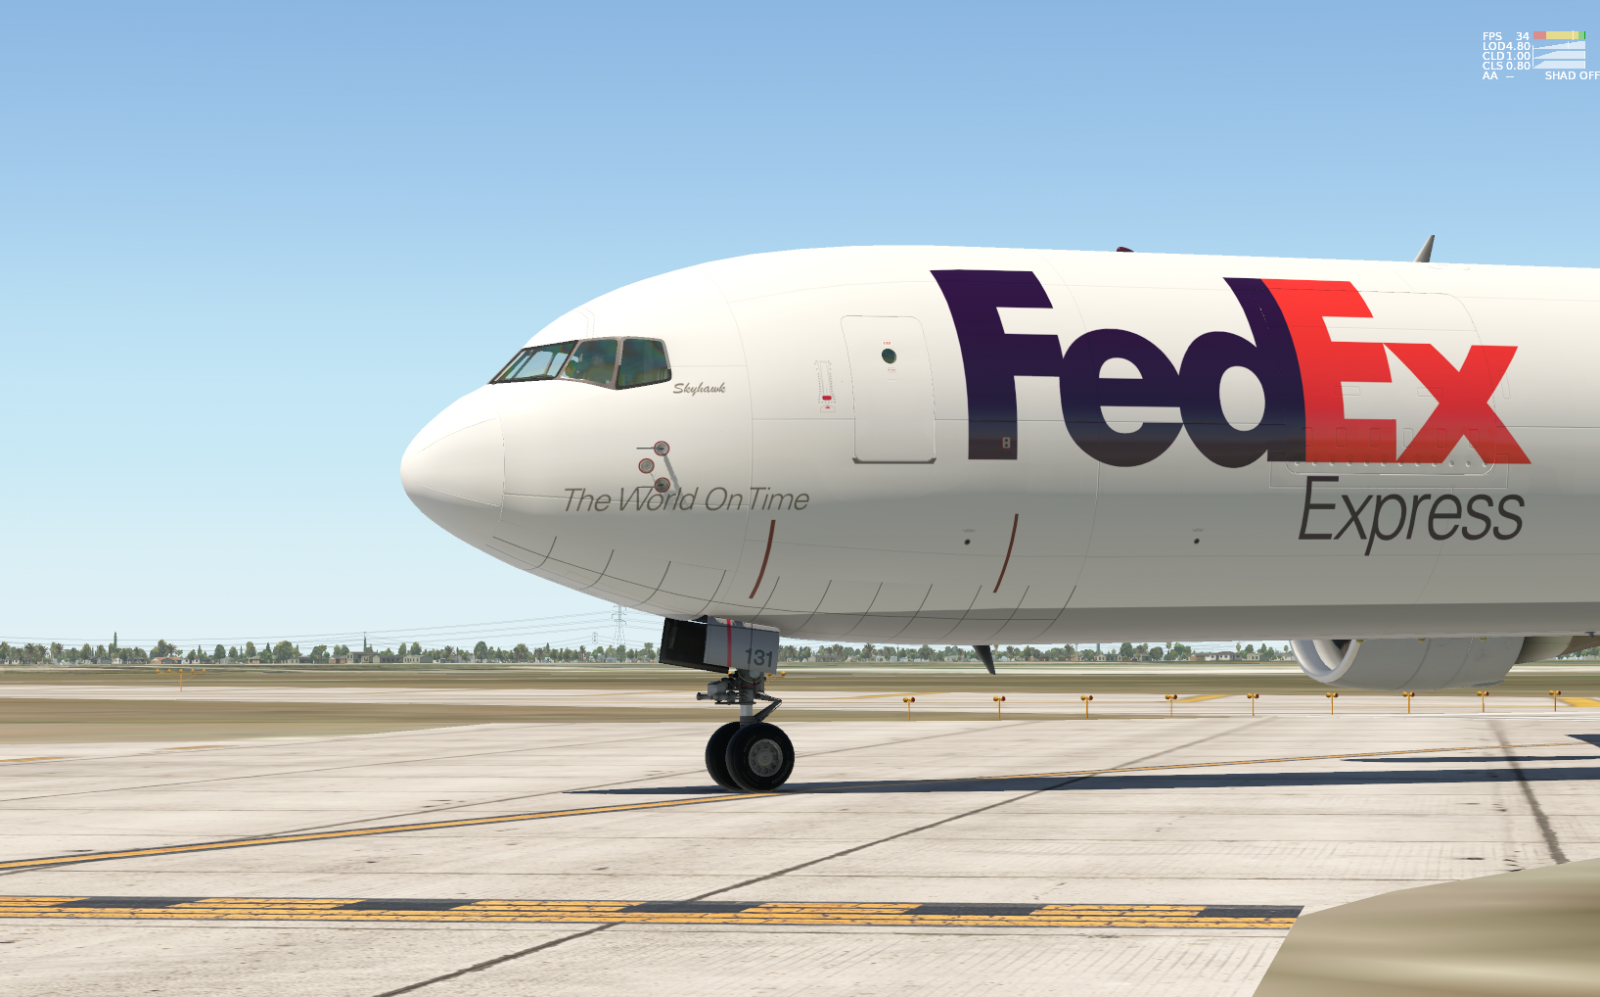 Since the 767 is still in production, we need factory fresh FedEx